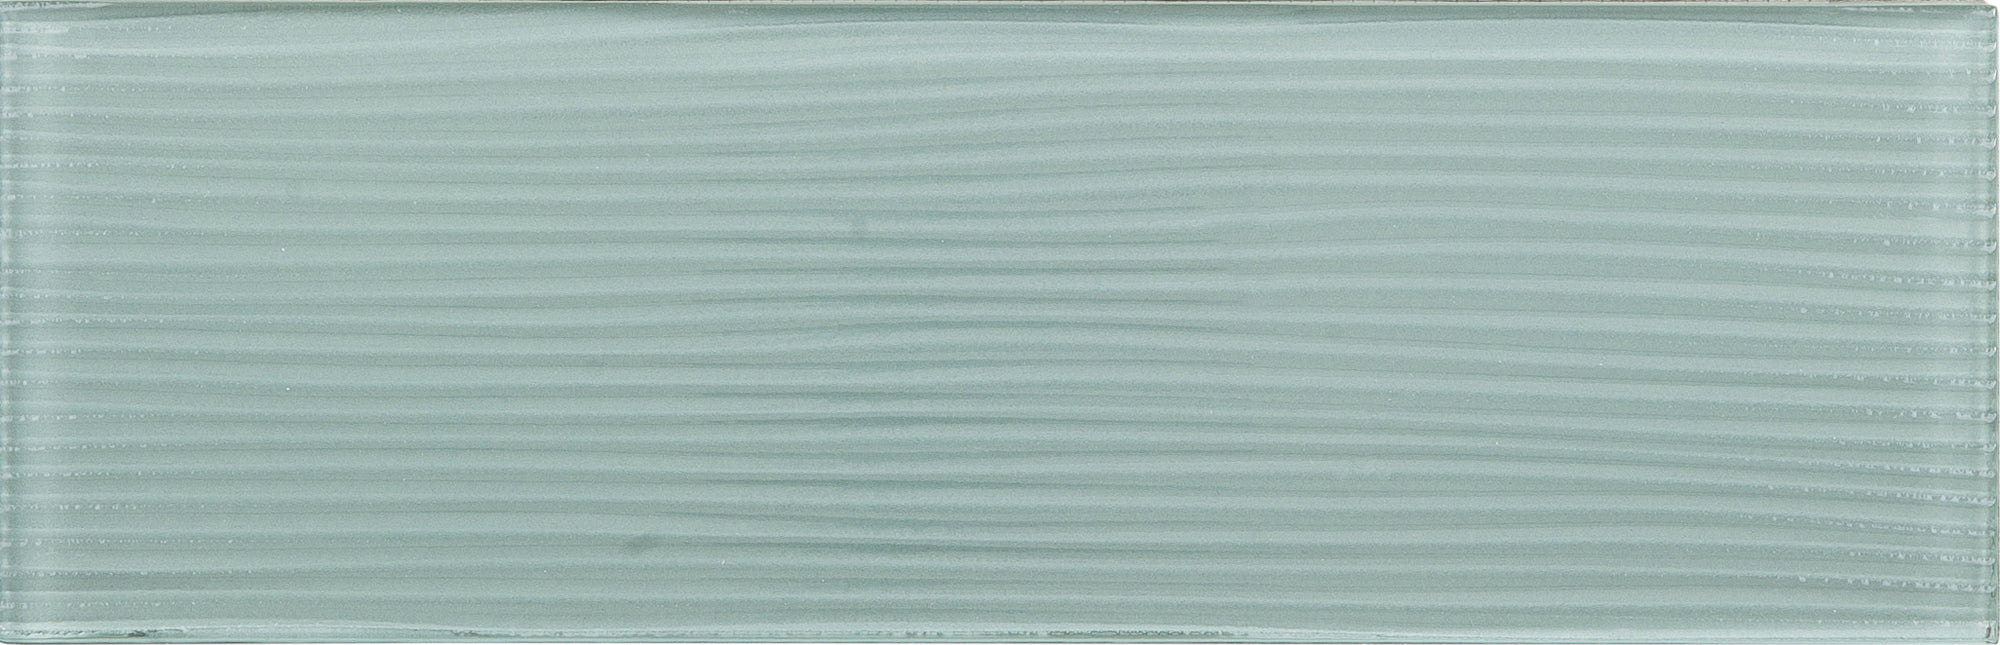 "Sweet Pea River 4"" x 12"" Subway Tile"